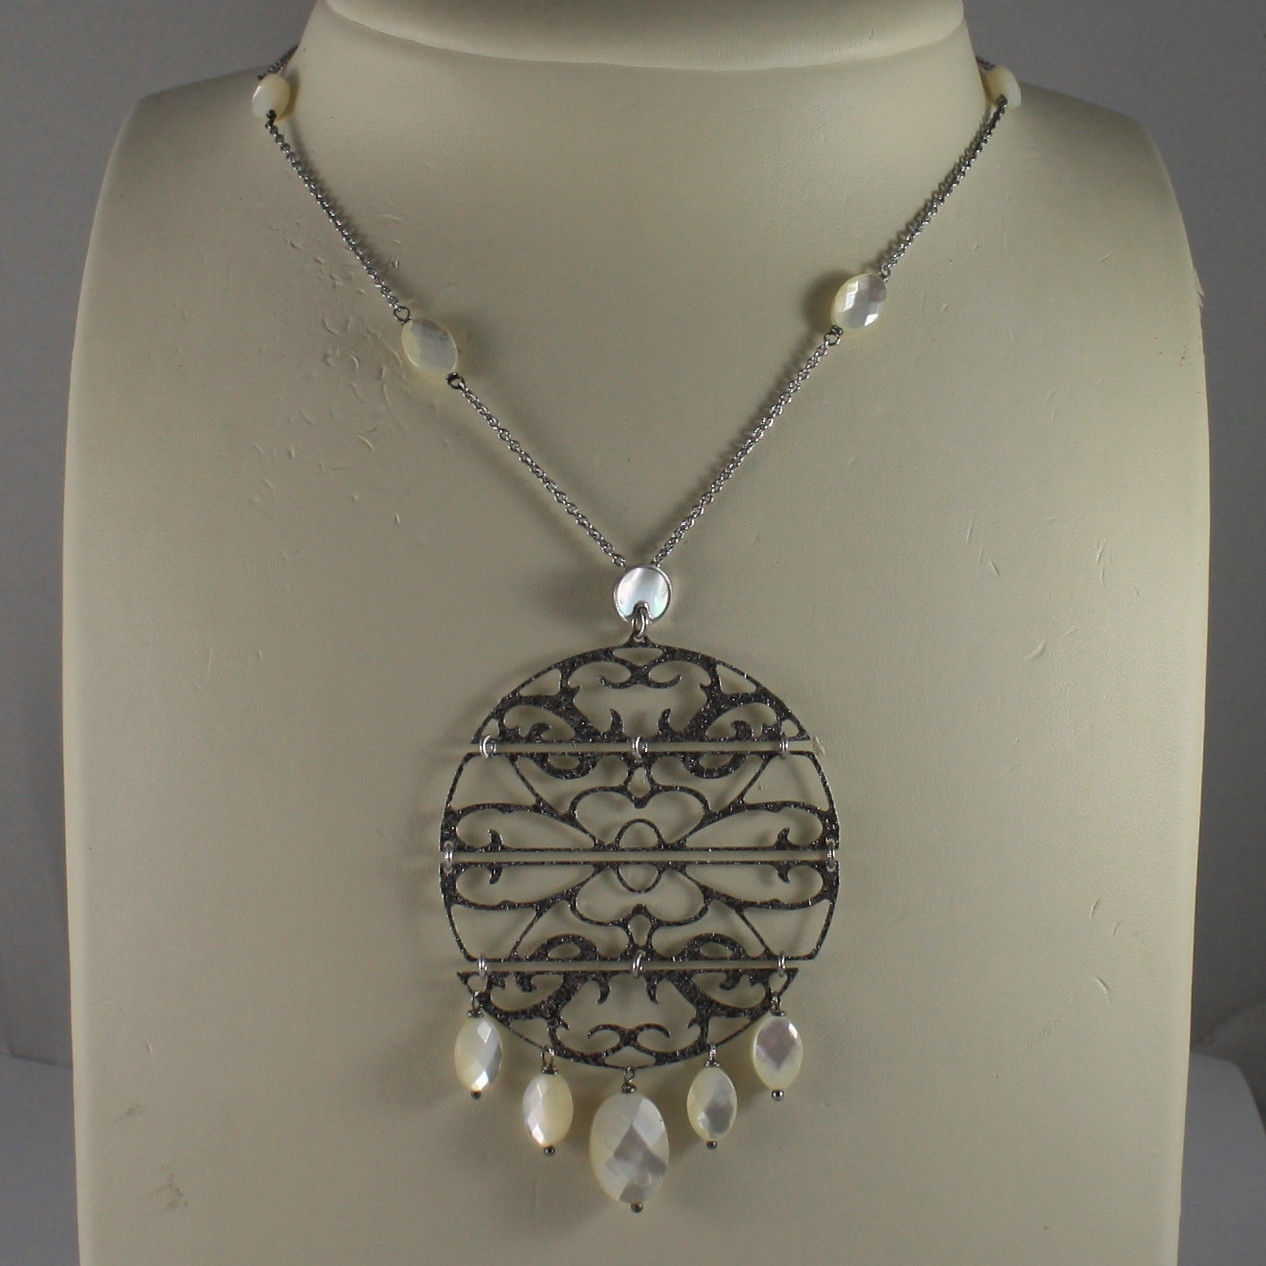 .925 SILVER RHODIUM NECKLACE WITH MOTHER OF PEARL AND PERFORATED DISC